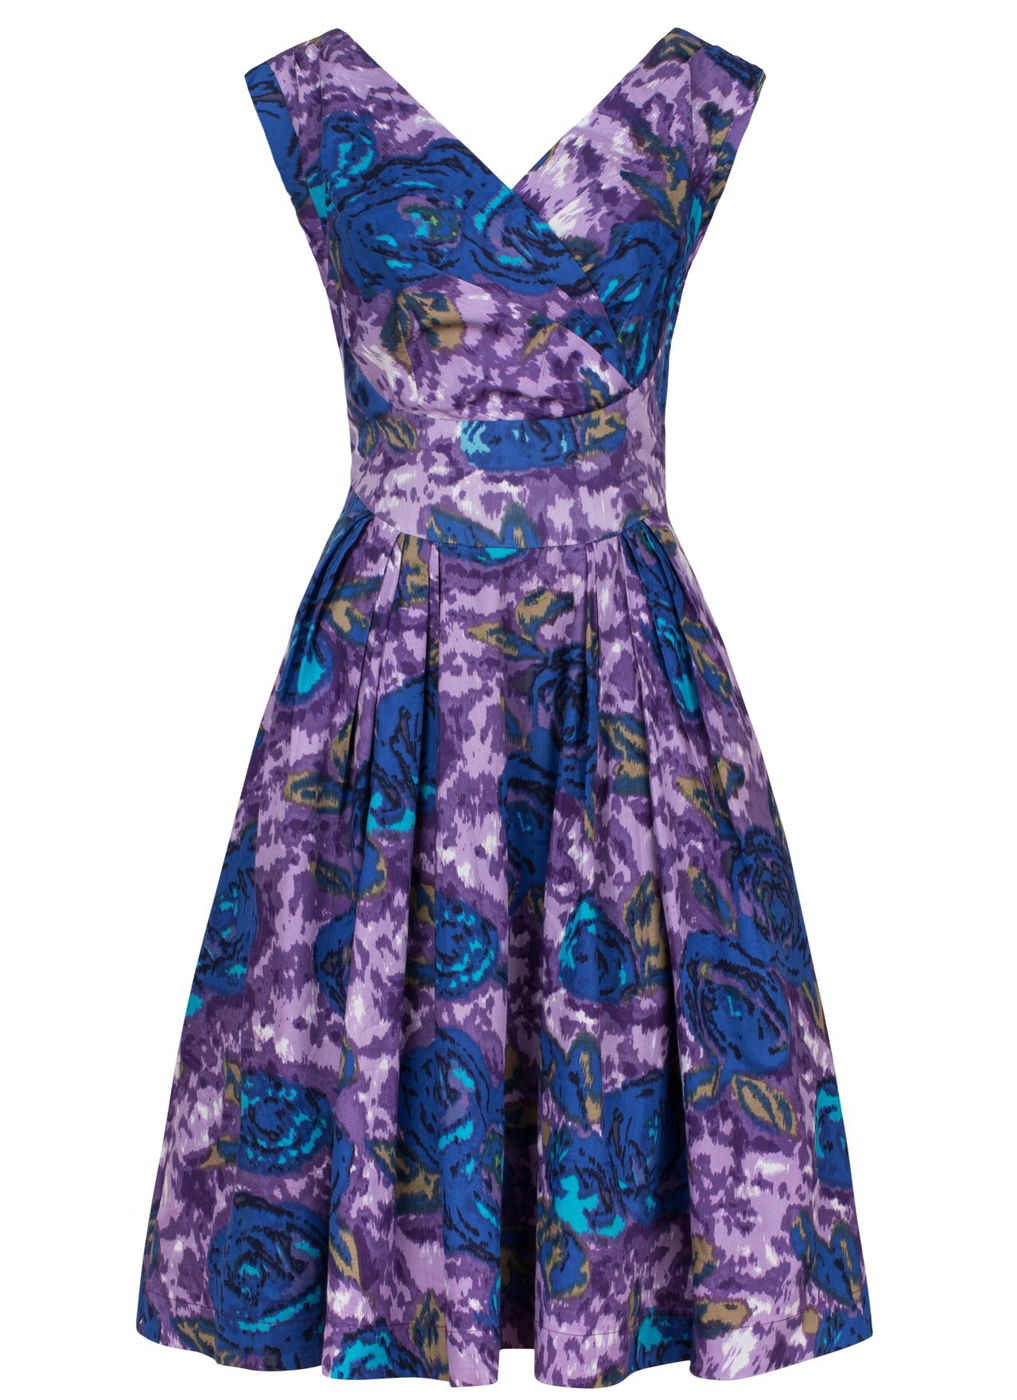 Tant Sofia-Florence dress, Purple sketchy floral, Emily and Fin